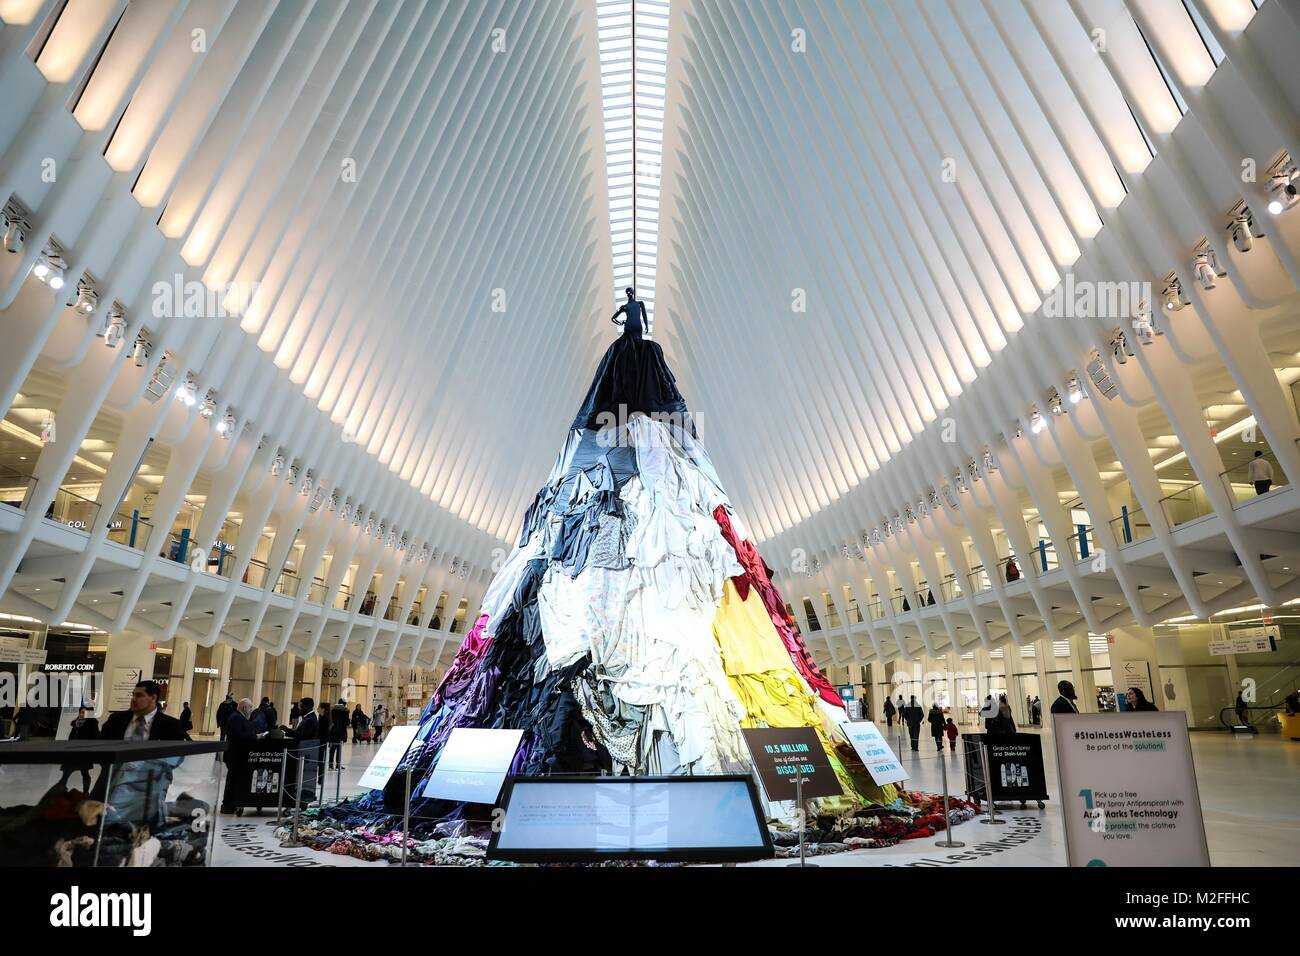 An artistic installation, Stain-Less, Waste-Less, can be seen at The Oculus World Trade Center in Manhattan in New - Stock Image